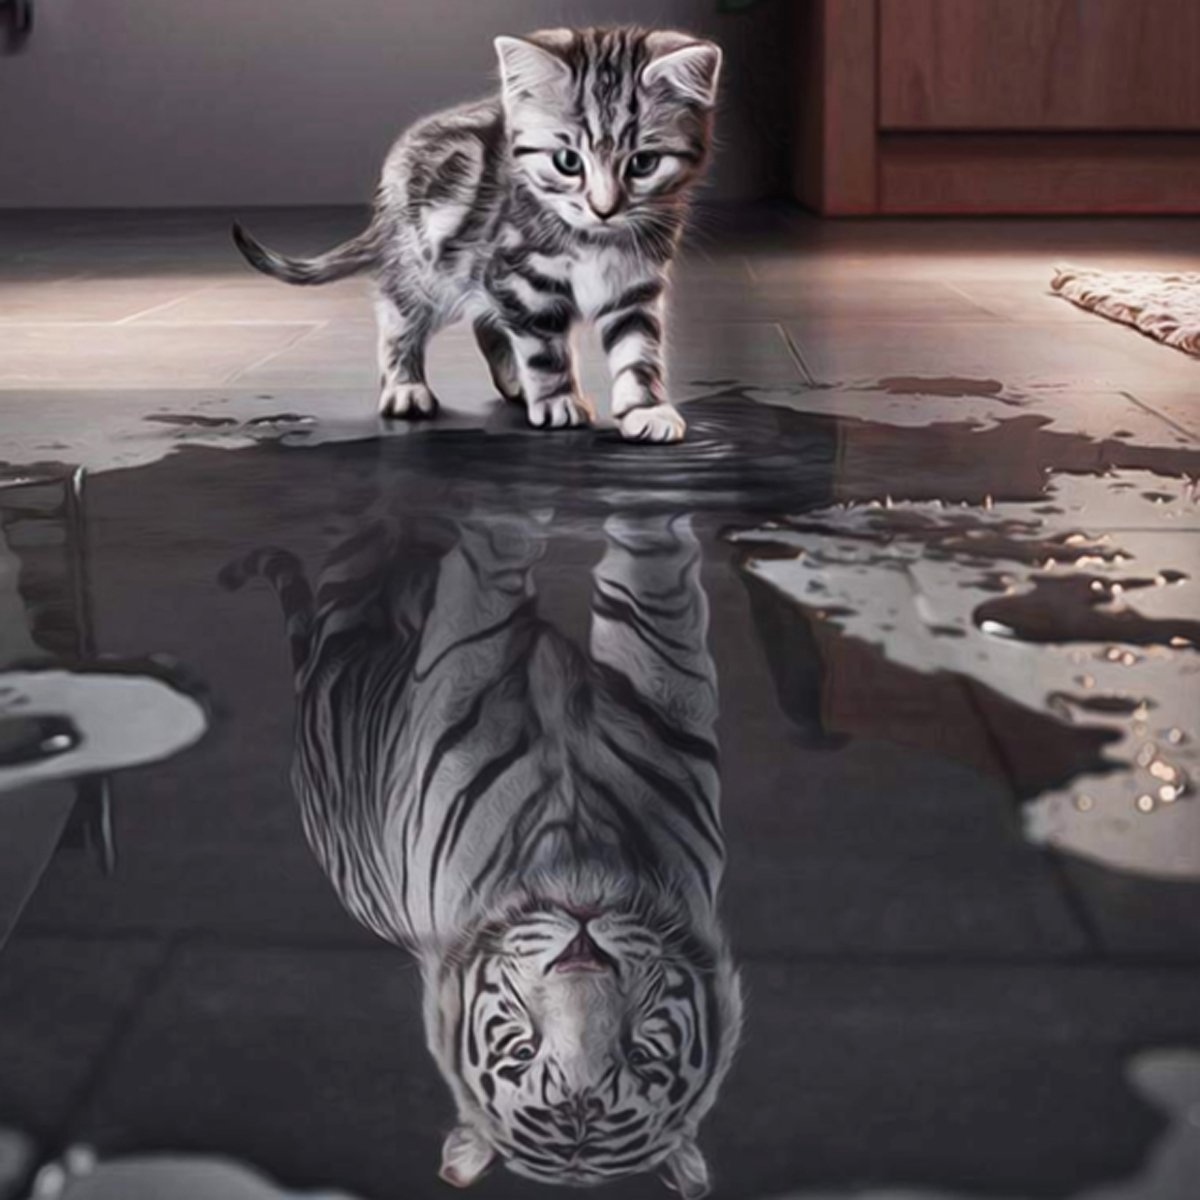 ZHENC 5D DIY Square Diamond Painting Drawing Crafts Cat Reflection White Tiger Animal Embroidery Needlework Full Drill Decor Cross Stitch Kits